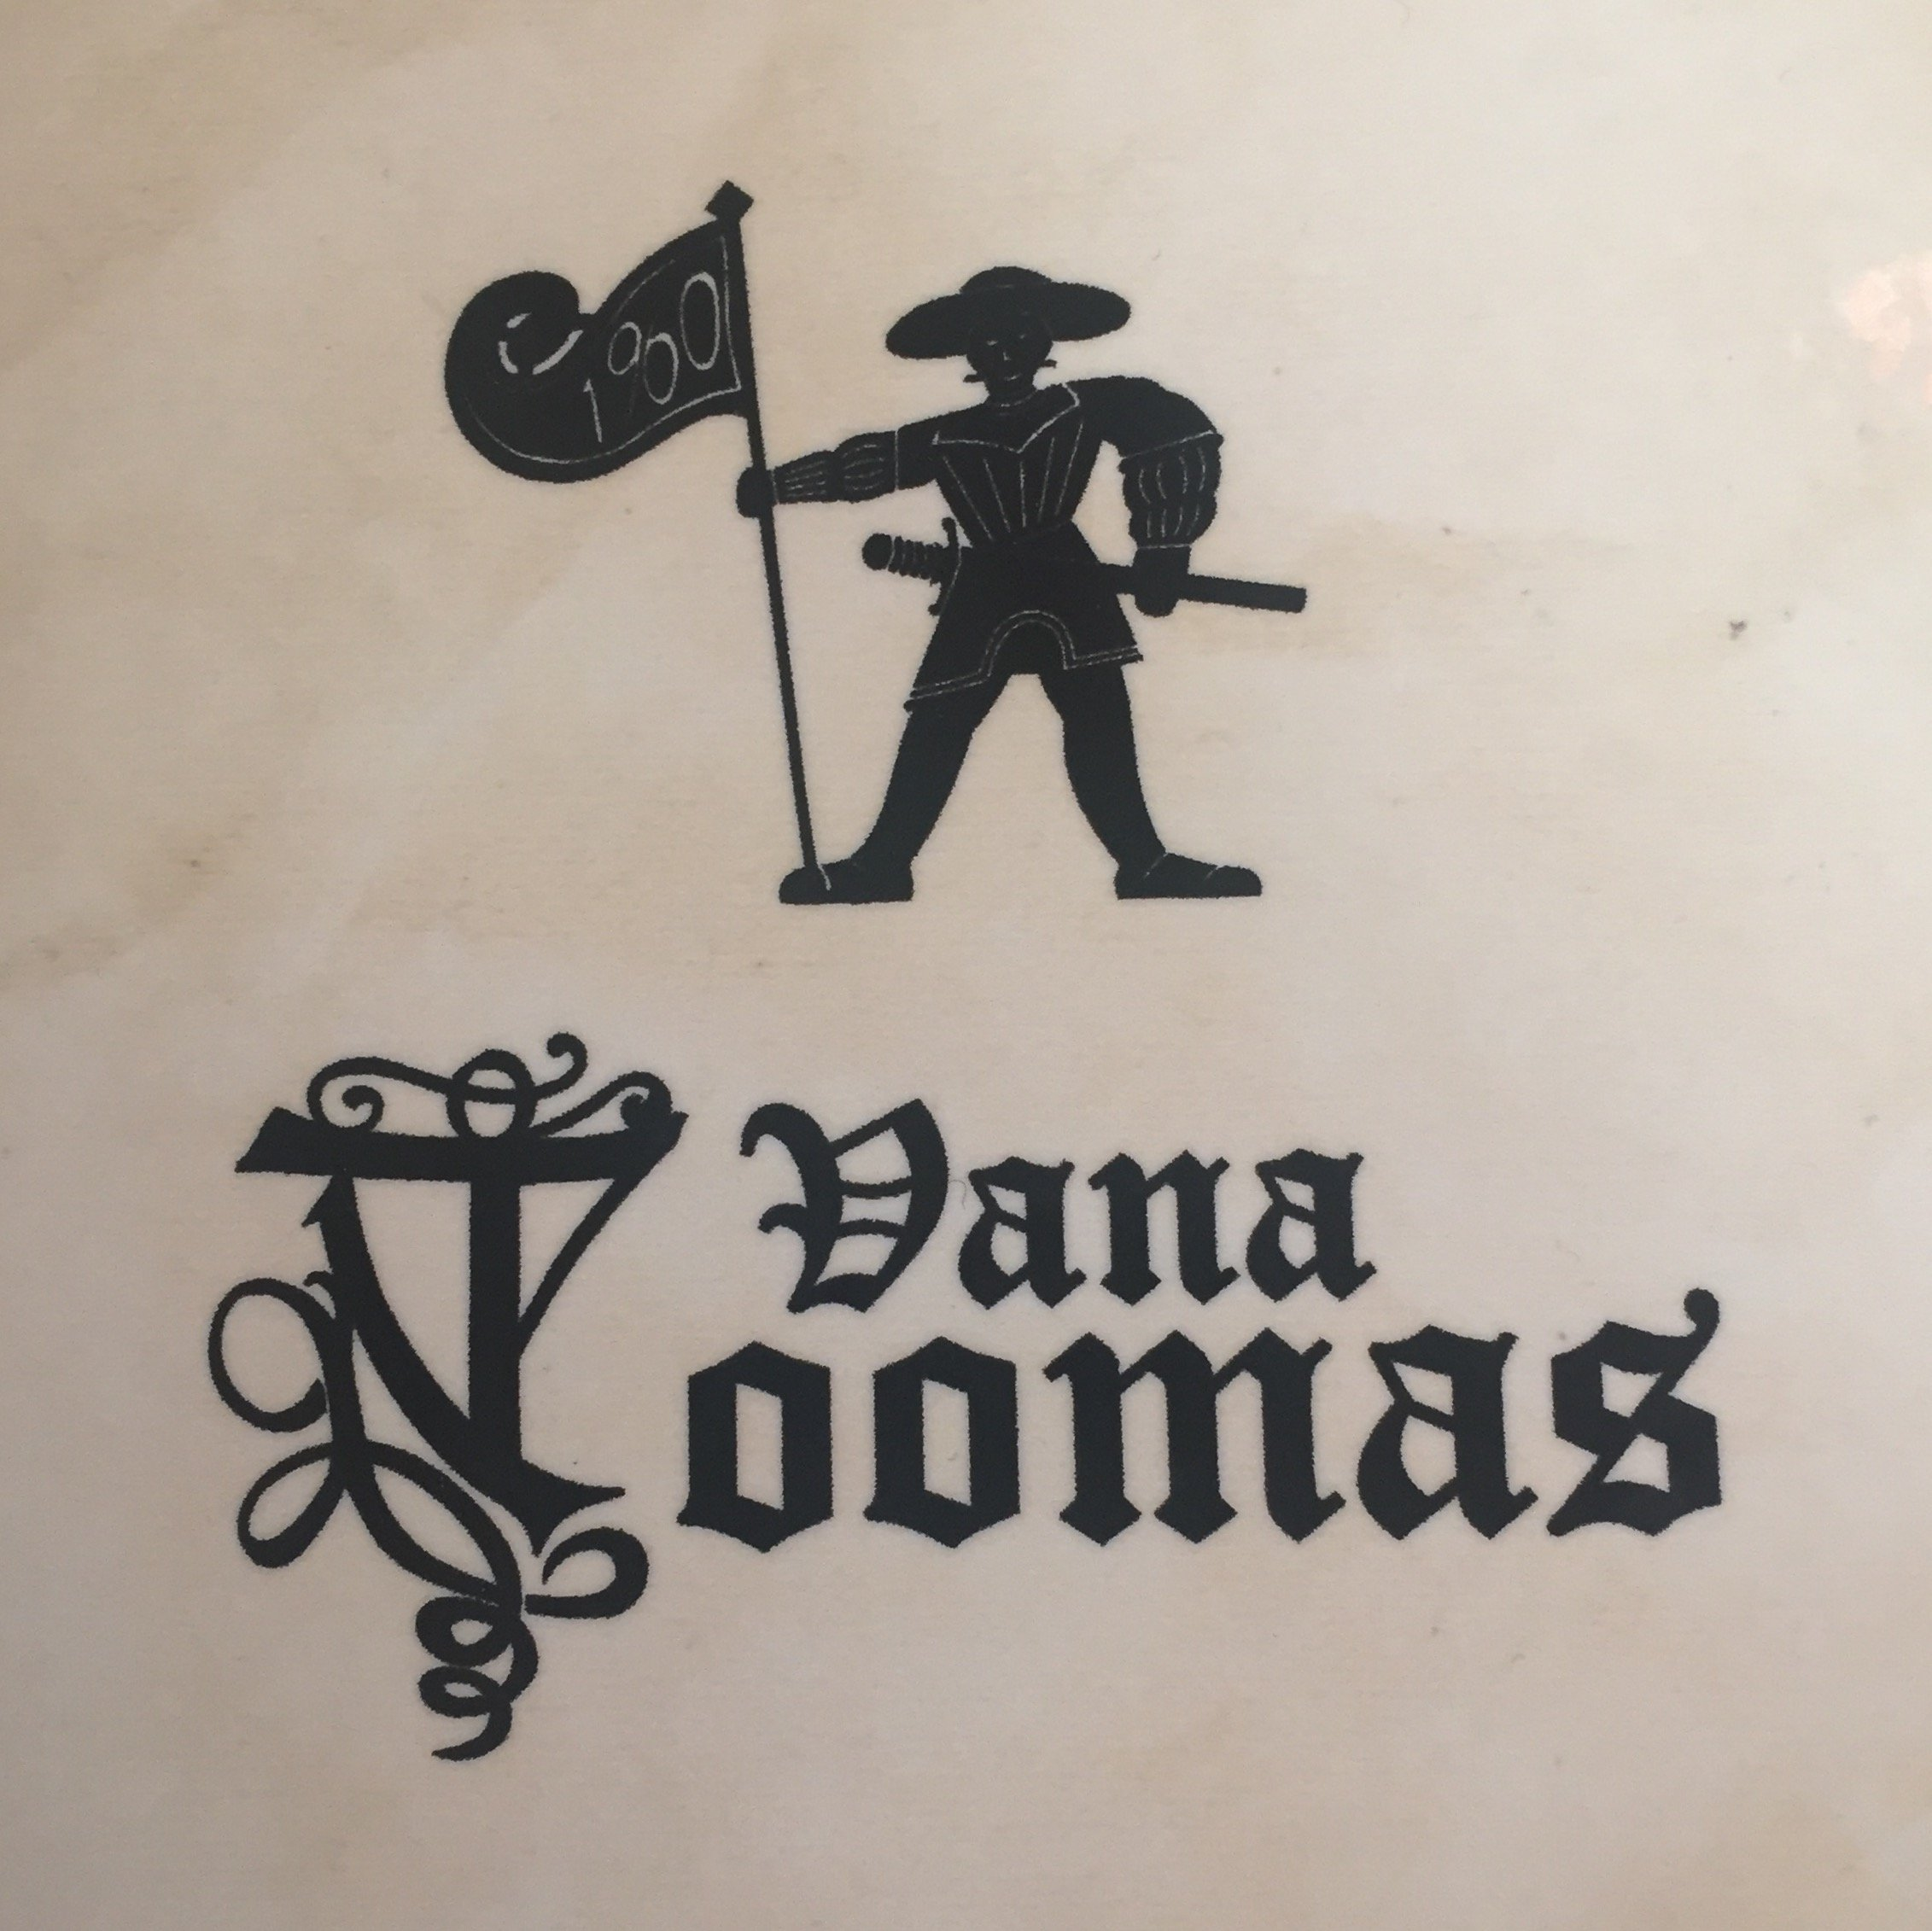 Vana Toomas, a legend of Tallinn and also a restaurant